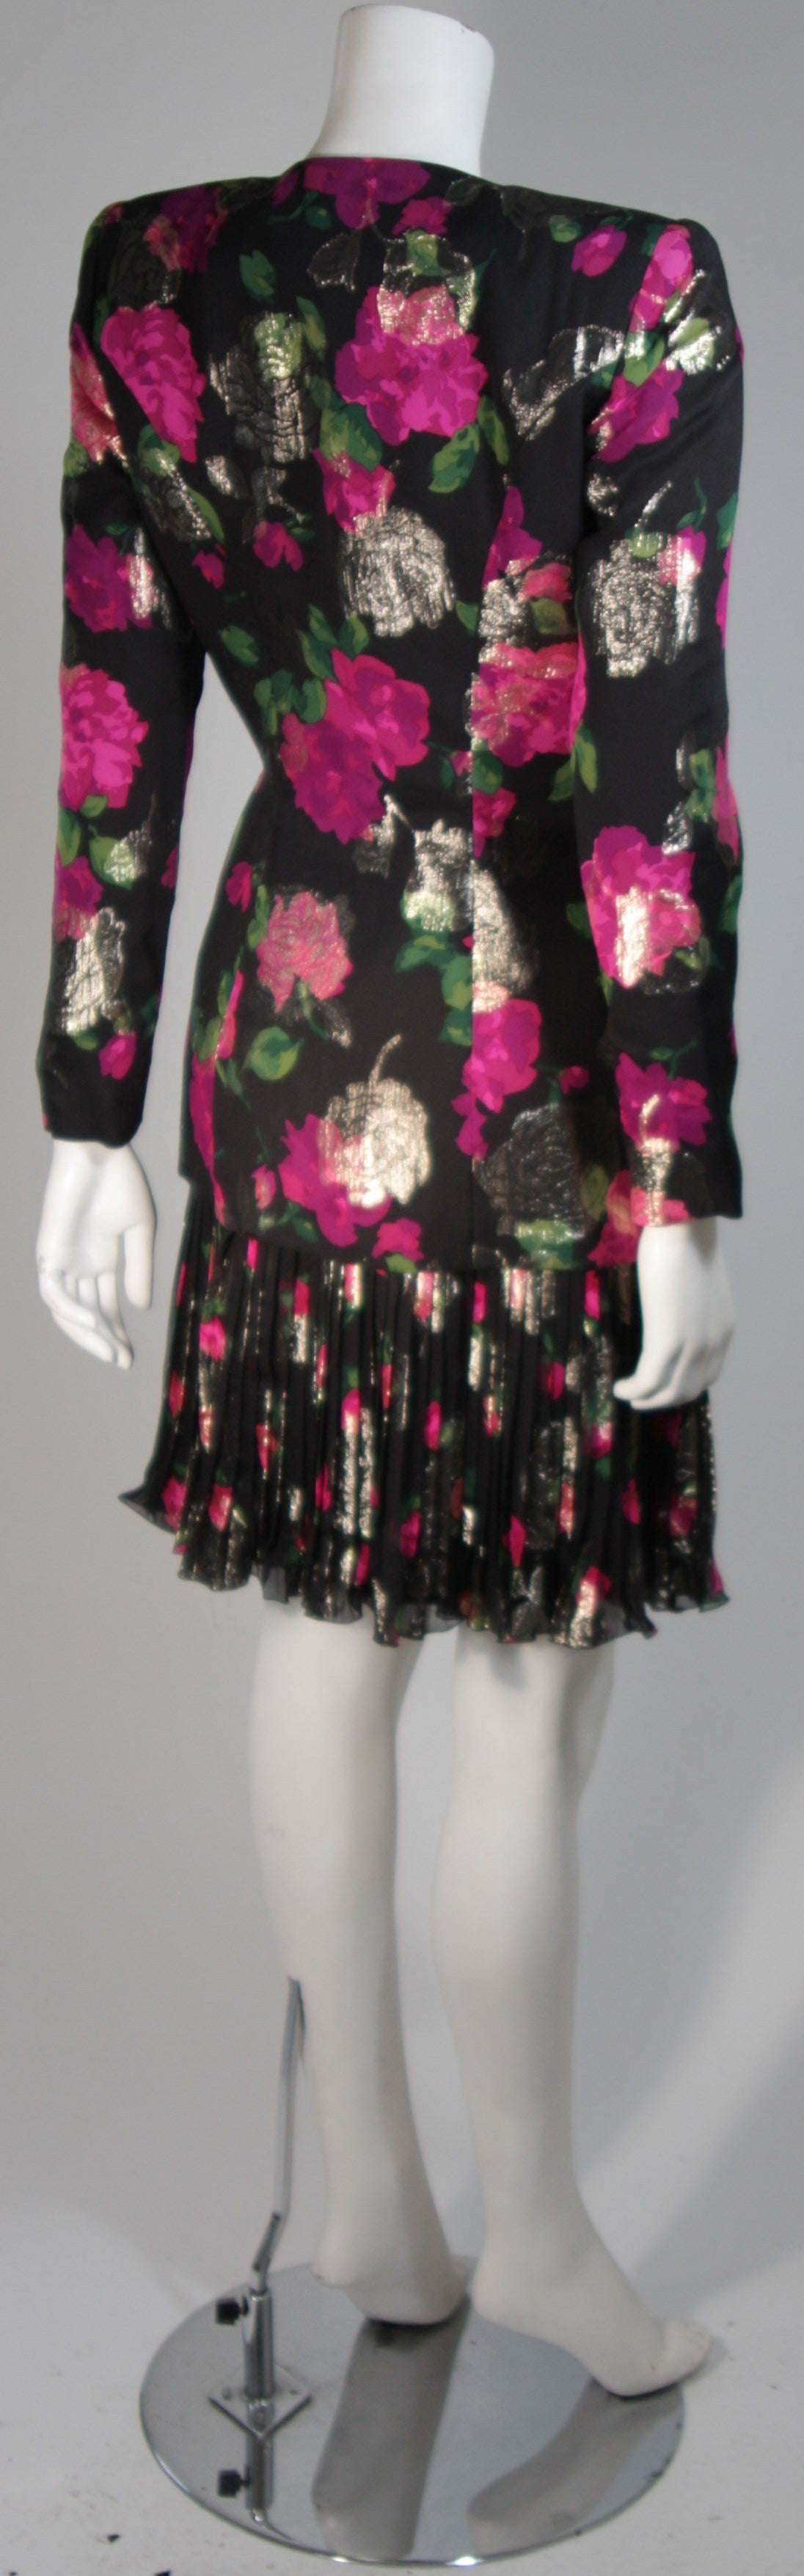 Vicky Tiel Black SilkSuit with Floral Motif and Pleated Chiffon Skirt Size Small For Sale 2